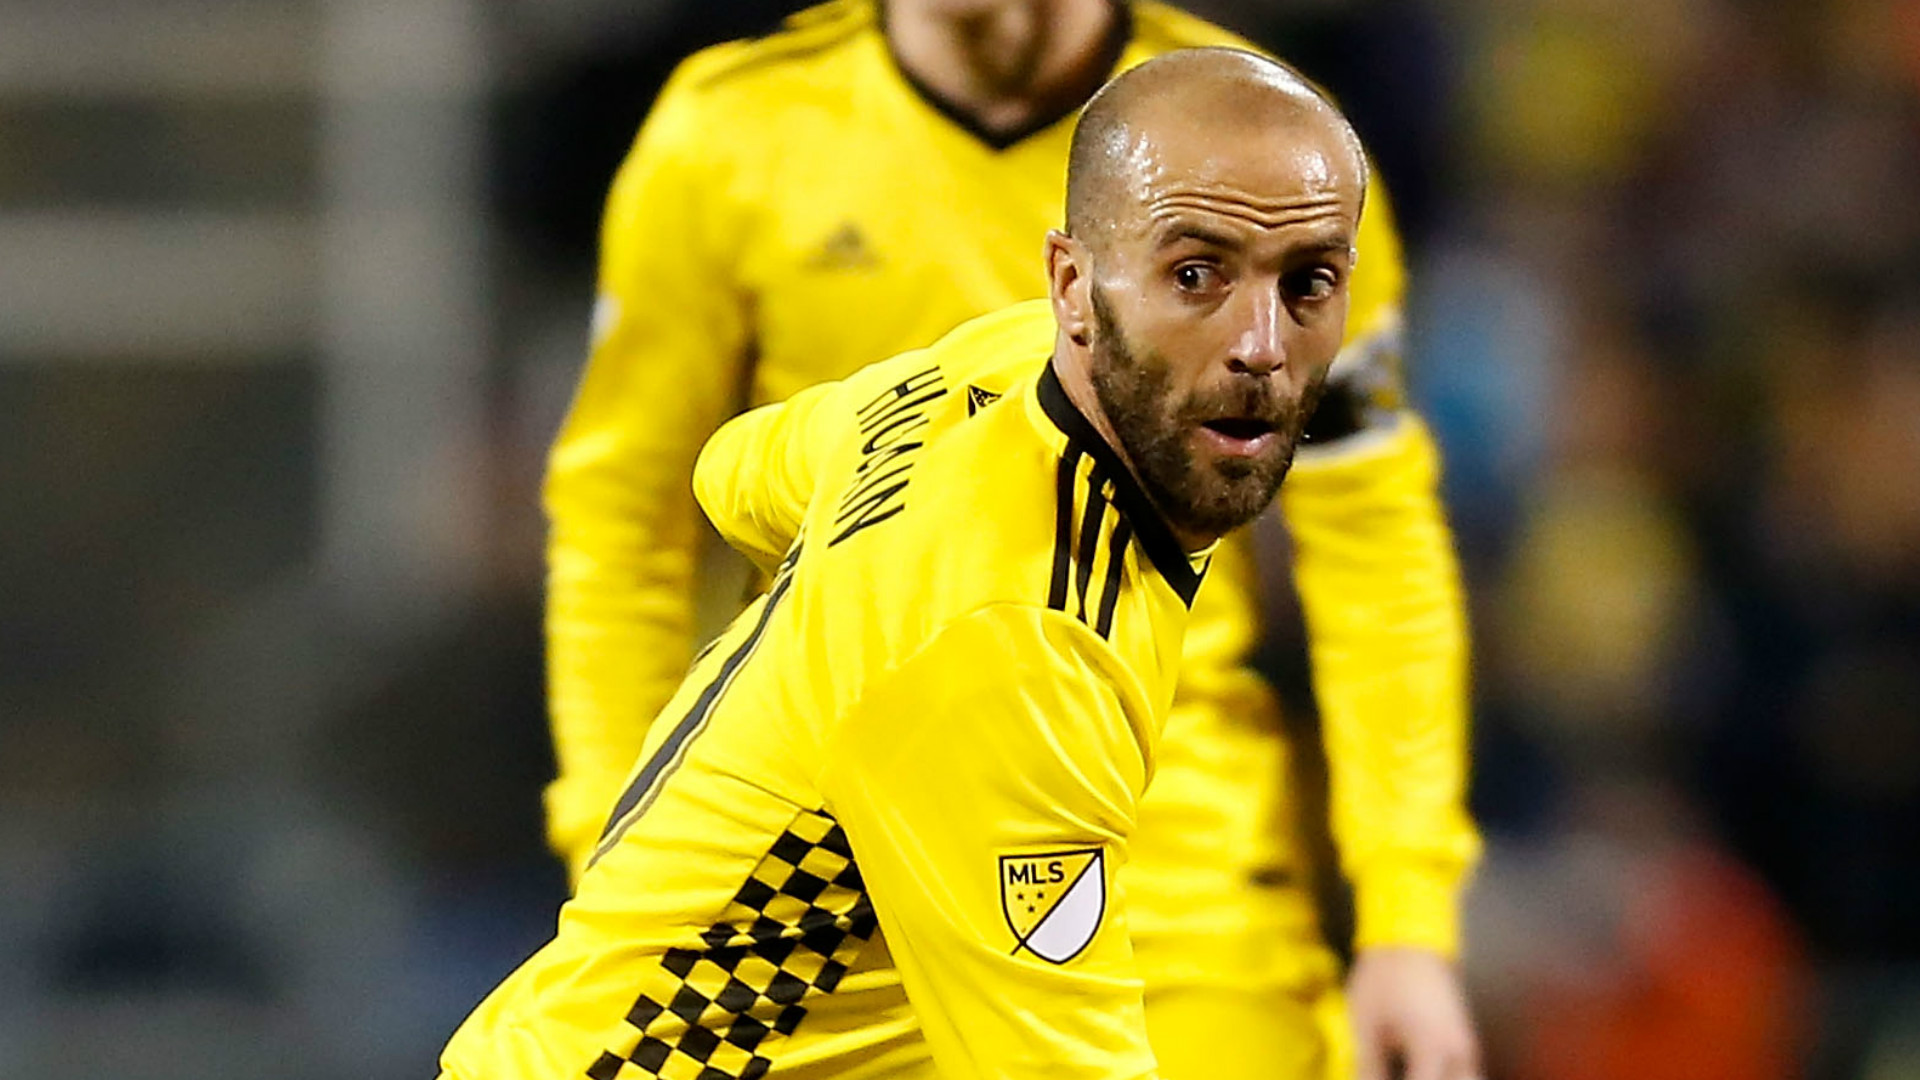 Mls Columbus Crew S Federico Higuain Gamble Pays Off Leaves New York Red Bulls In All Too Familiar Playoff Jeopardy Goal Com